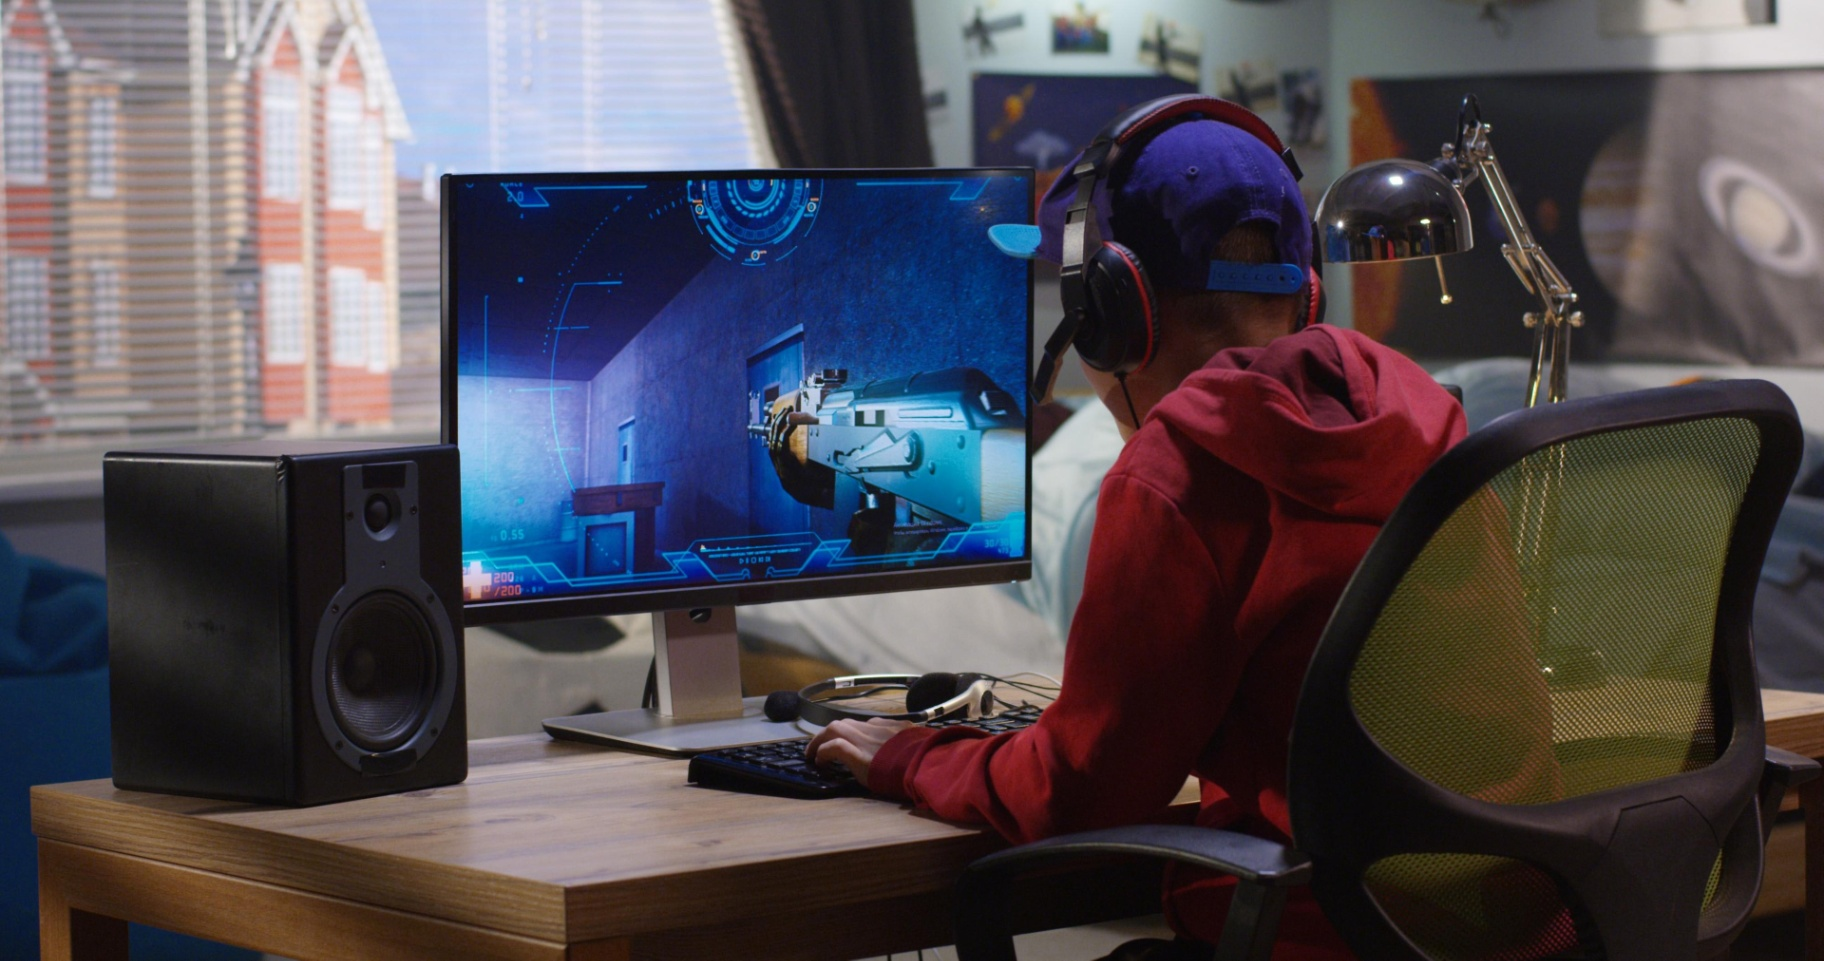 Find Out How To Get Free Gaming Equipment